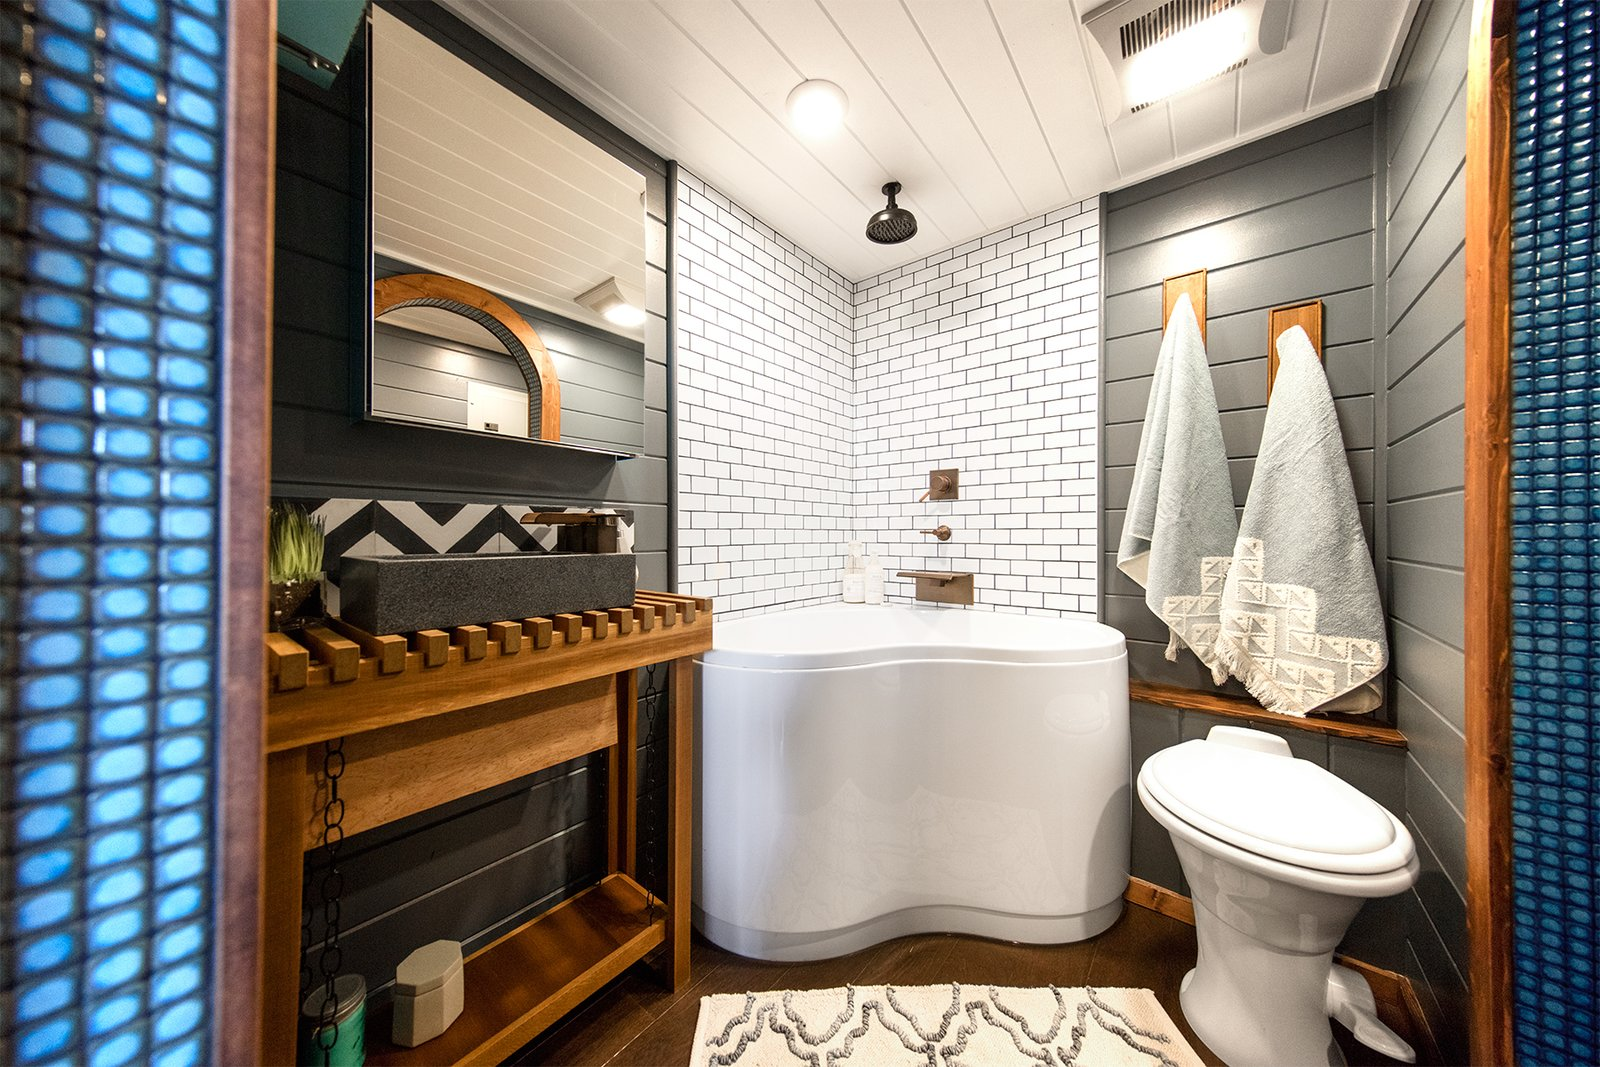 On the opposite end of the dining area is a spa-like bathroom with sliding arched doors, Moroccan tile trimming, a walk-closet, toilet, rain shower, and a corner jacuzzi bathtub.